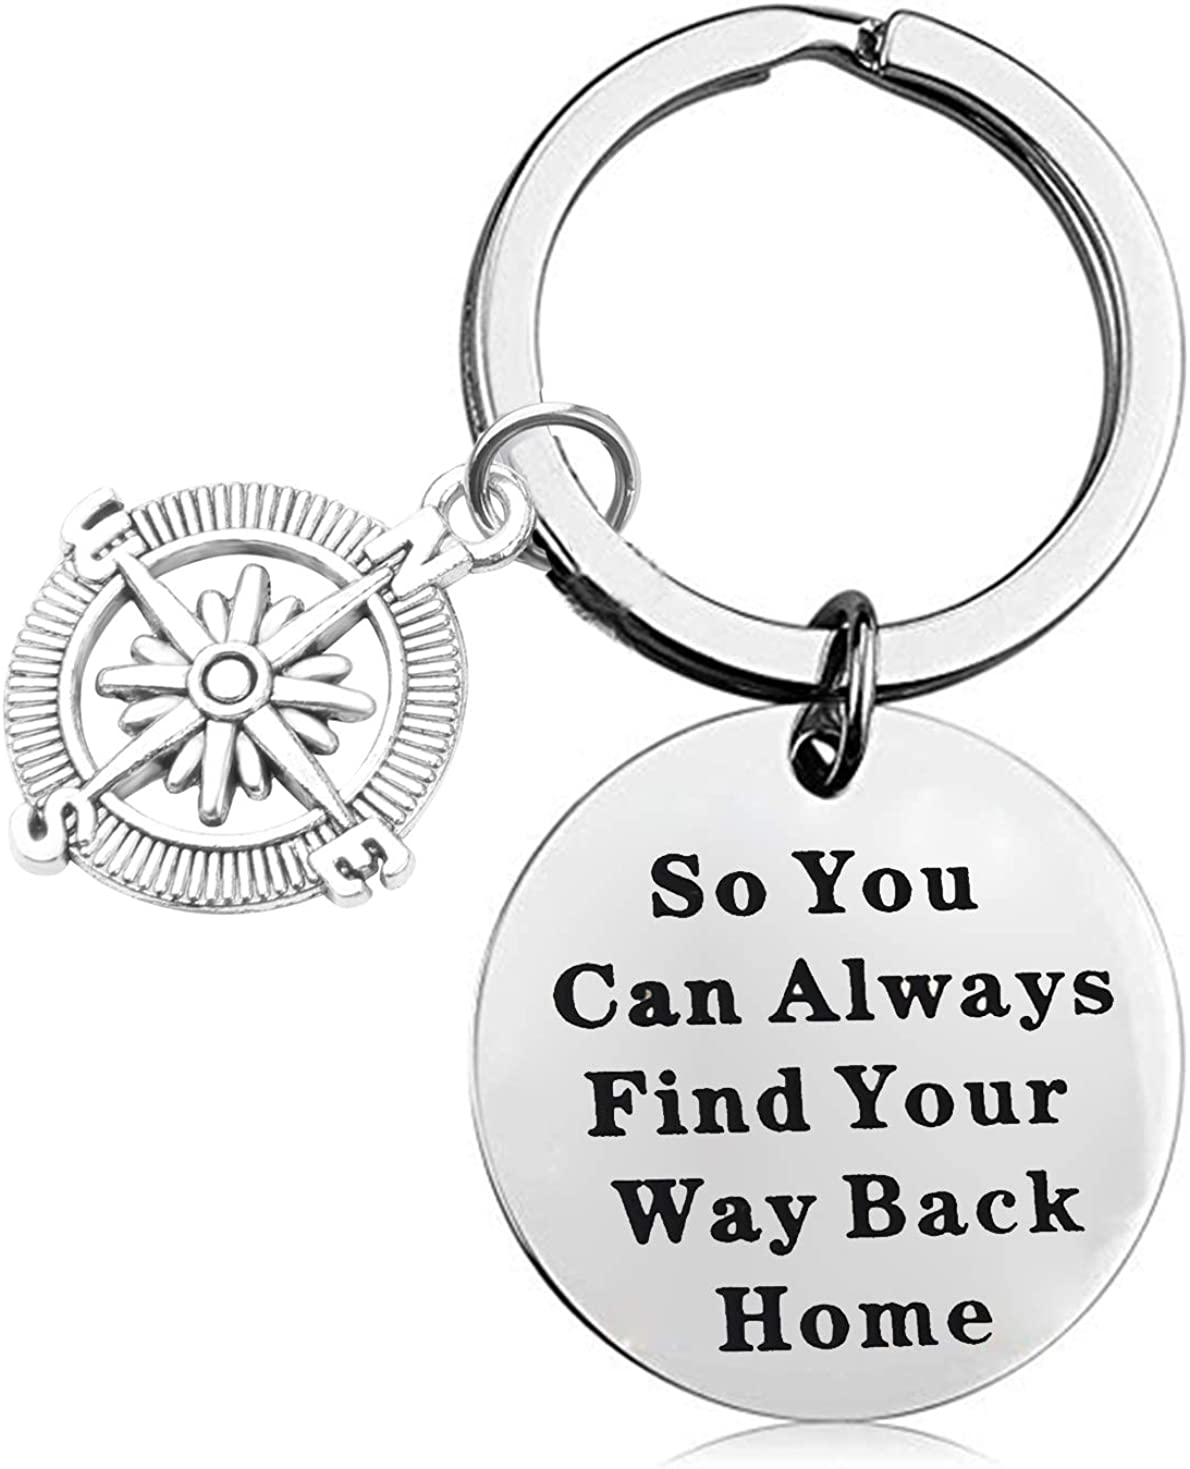 LQRI Compass Key Chain Wanderist Gift So You Can Always Find Your Way Back Home Keychain Travelling Jewelry Inspirational Adventure Gift